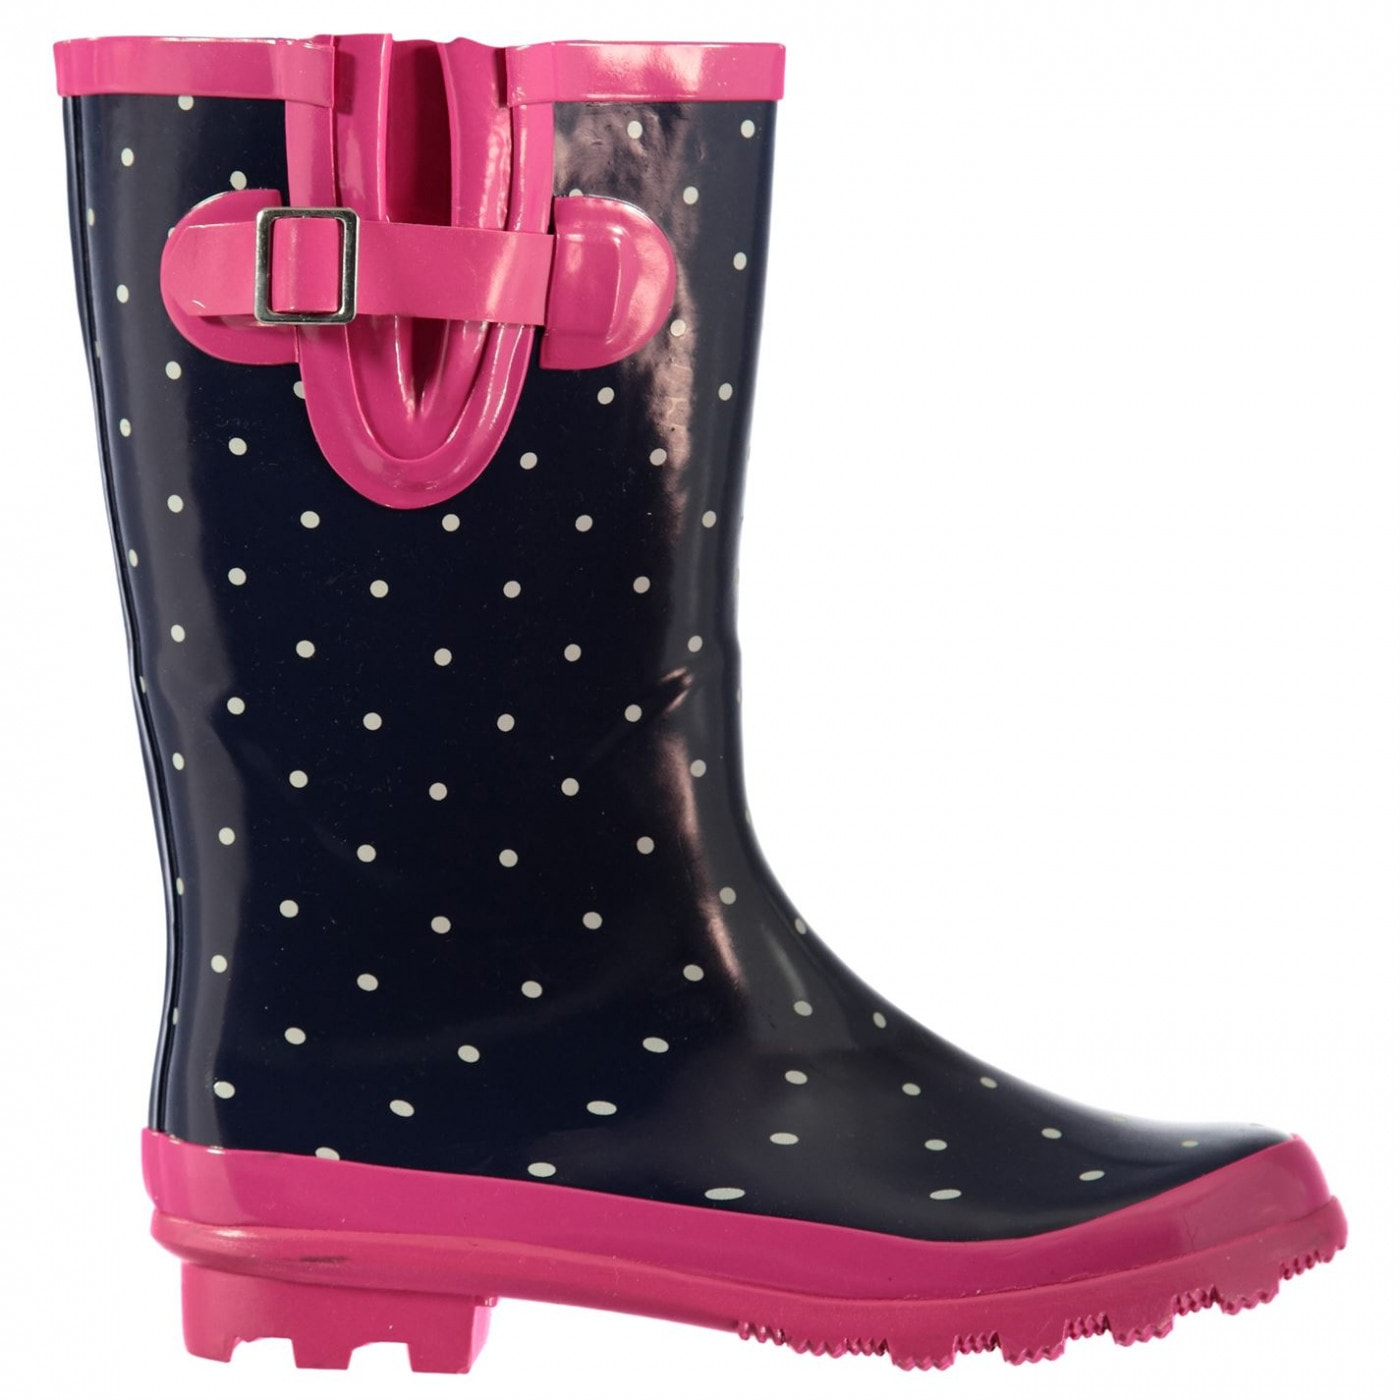 Rock and Rags Polka Dot Wellies Ladies